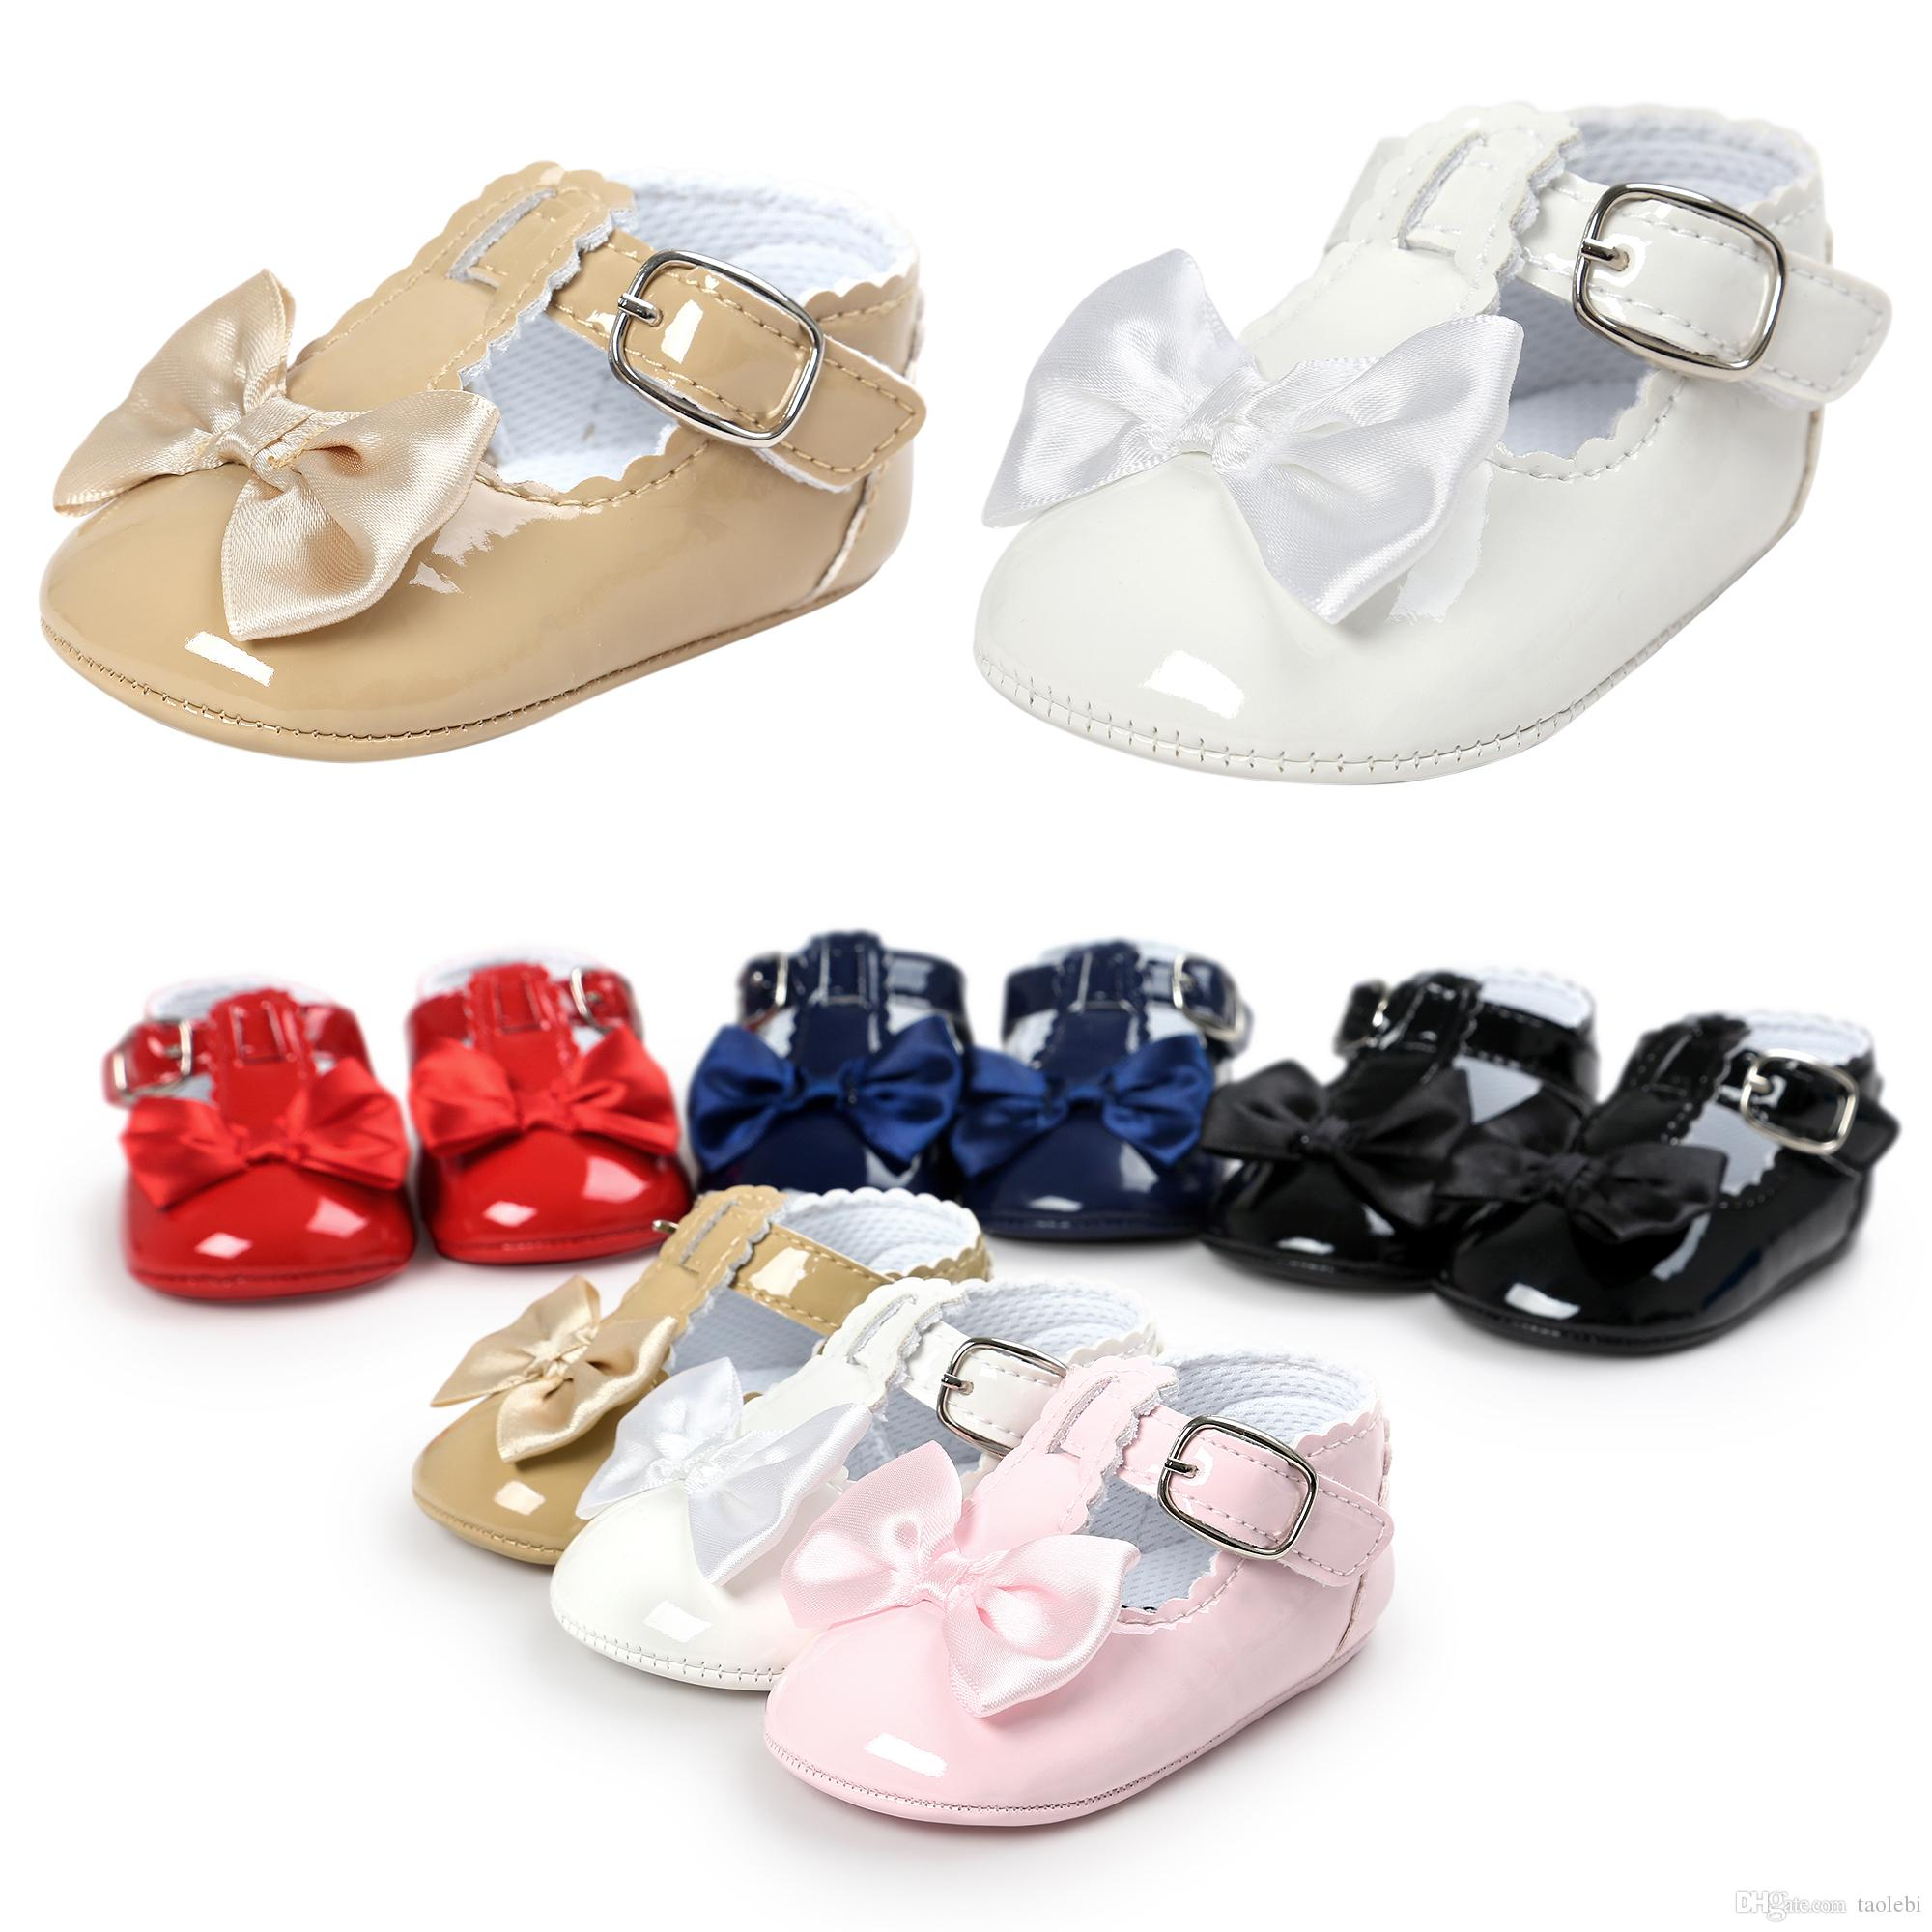 fcb65c22f3715 2019 2017 Leather Baby Girl Shoes Fashion Bowknot Design Baby Princess  Shoes Newborn Baby Shoes Sweet Bow Design Can Mix Colors From Taolebi